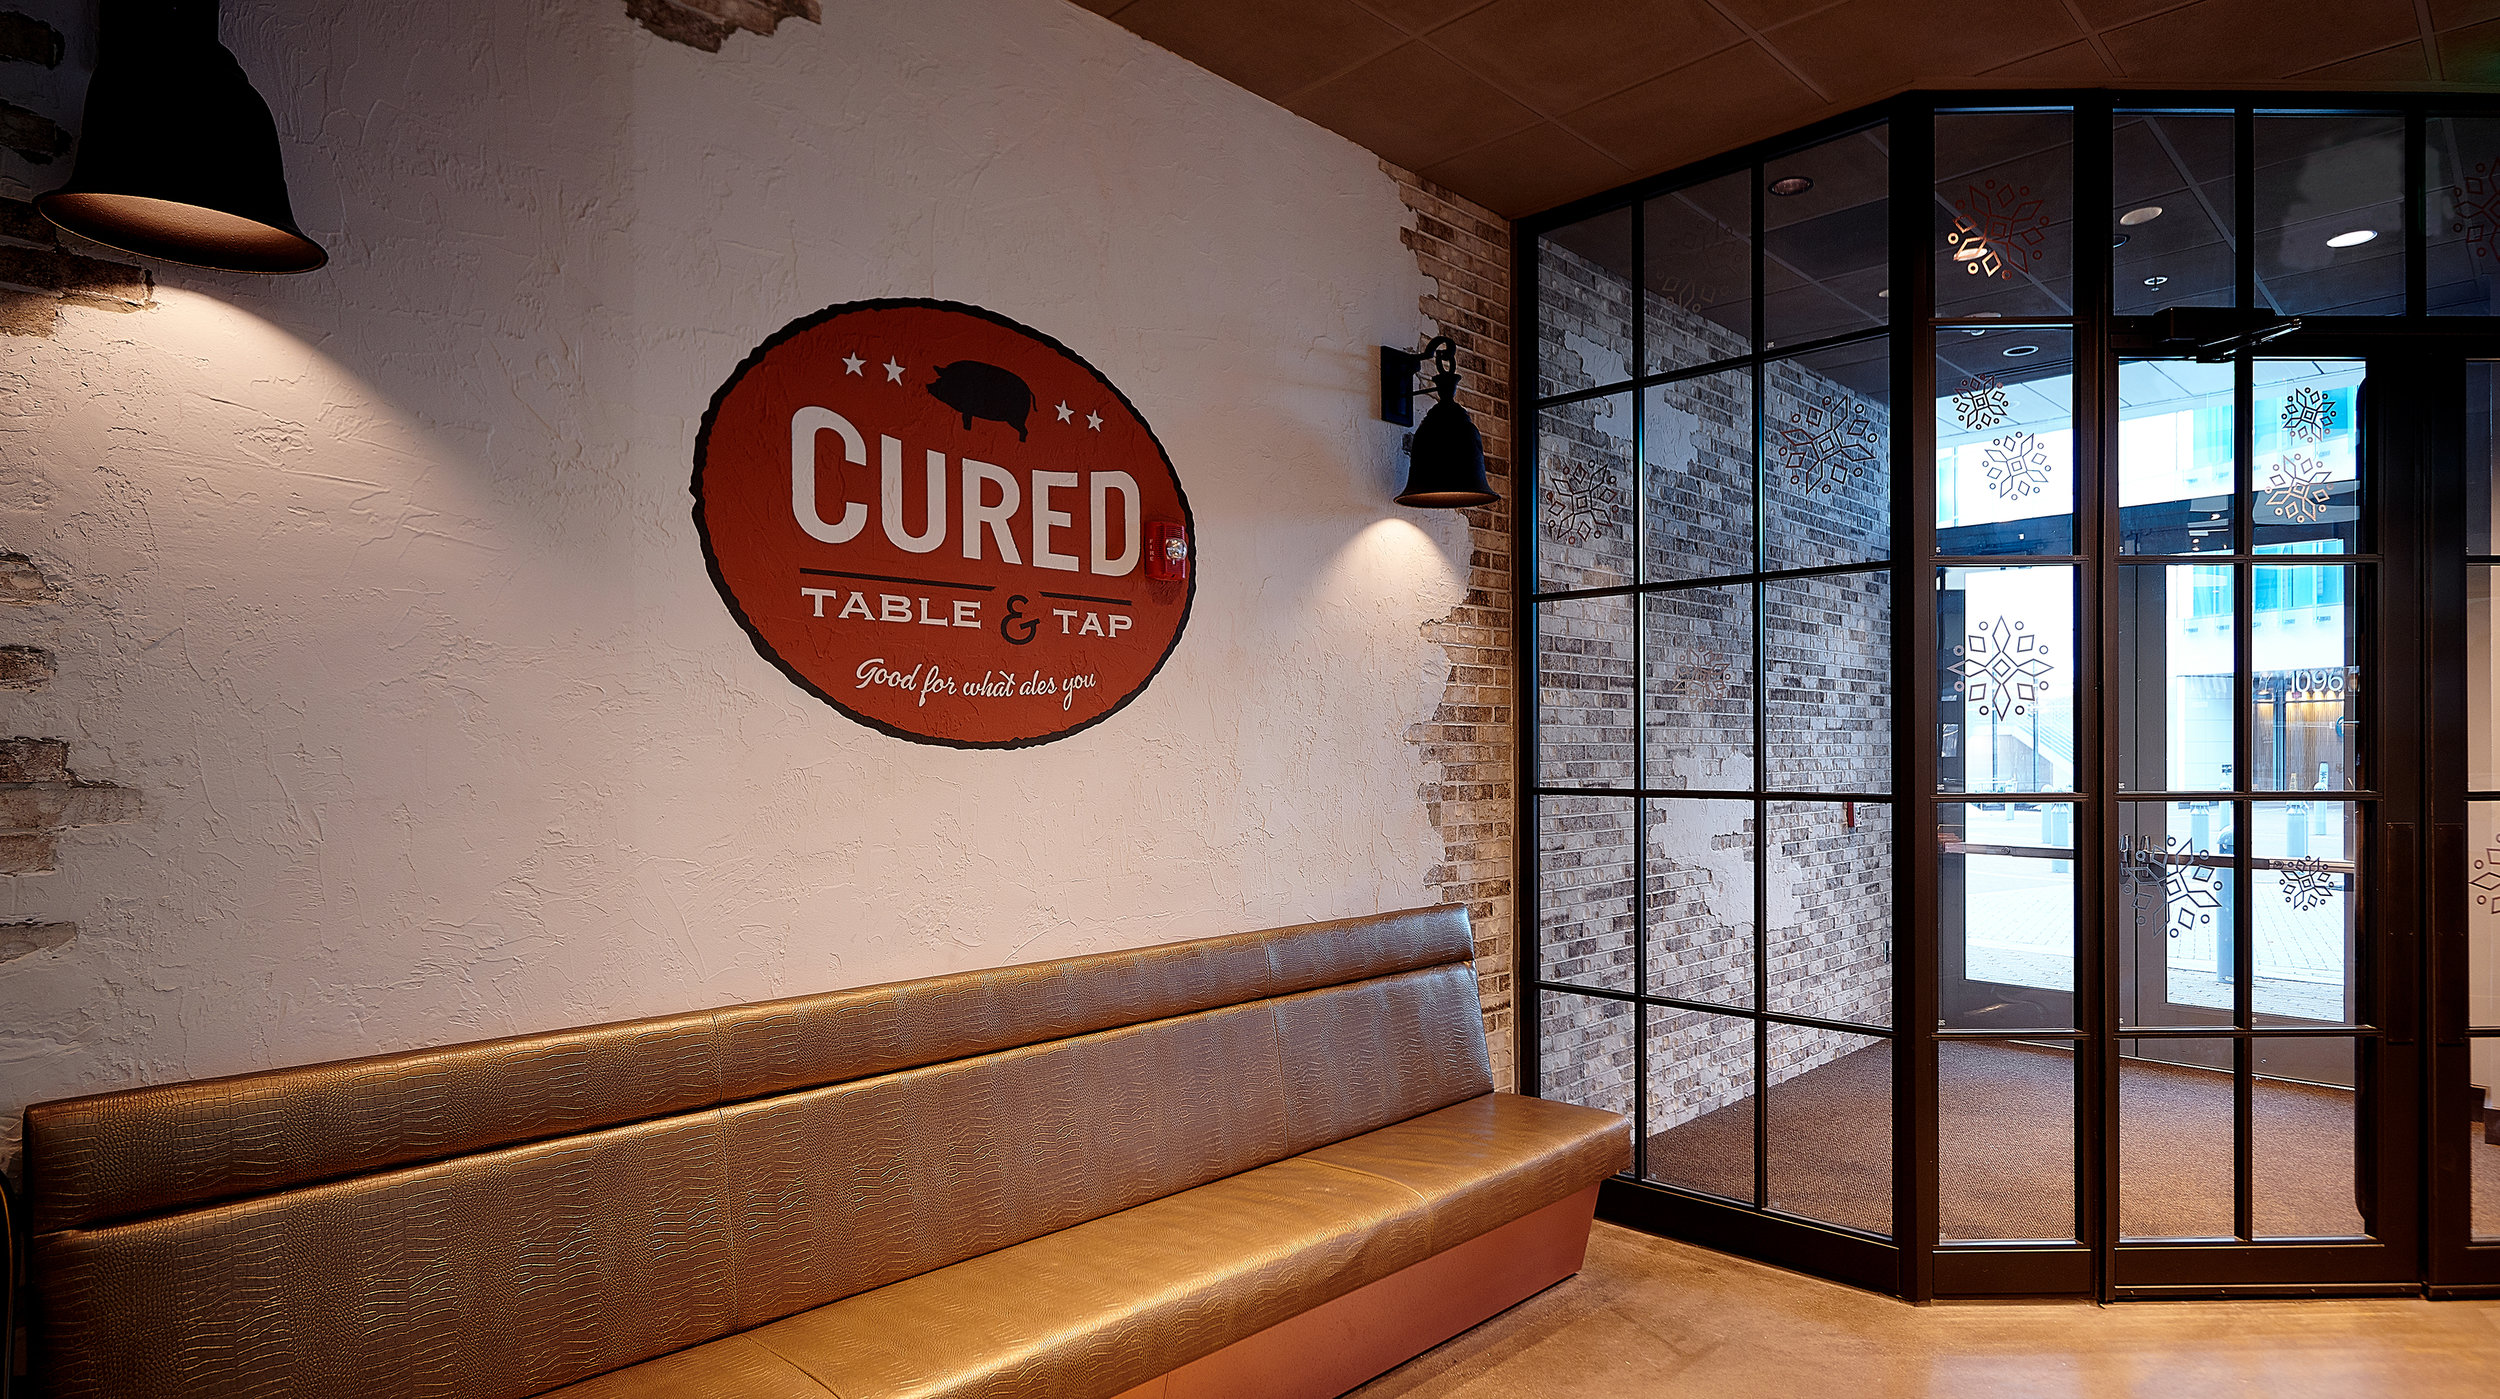 Cured-18th&21st_Lena-Munther_2019-01-203133 2.jpg